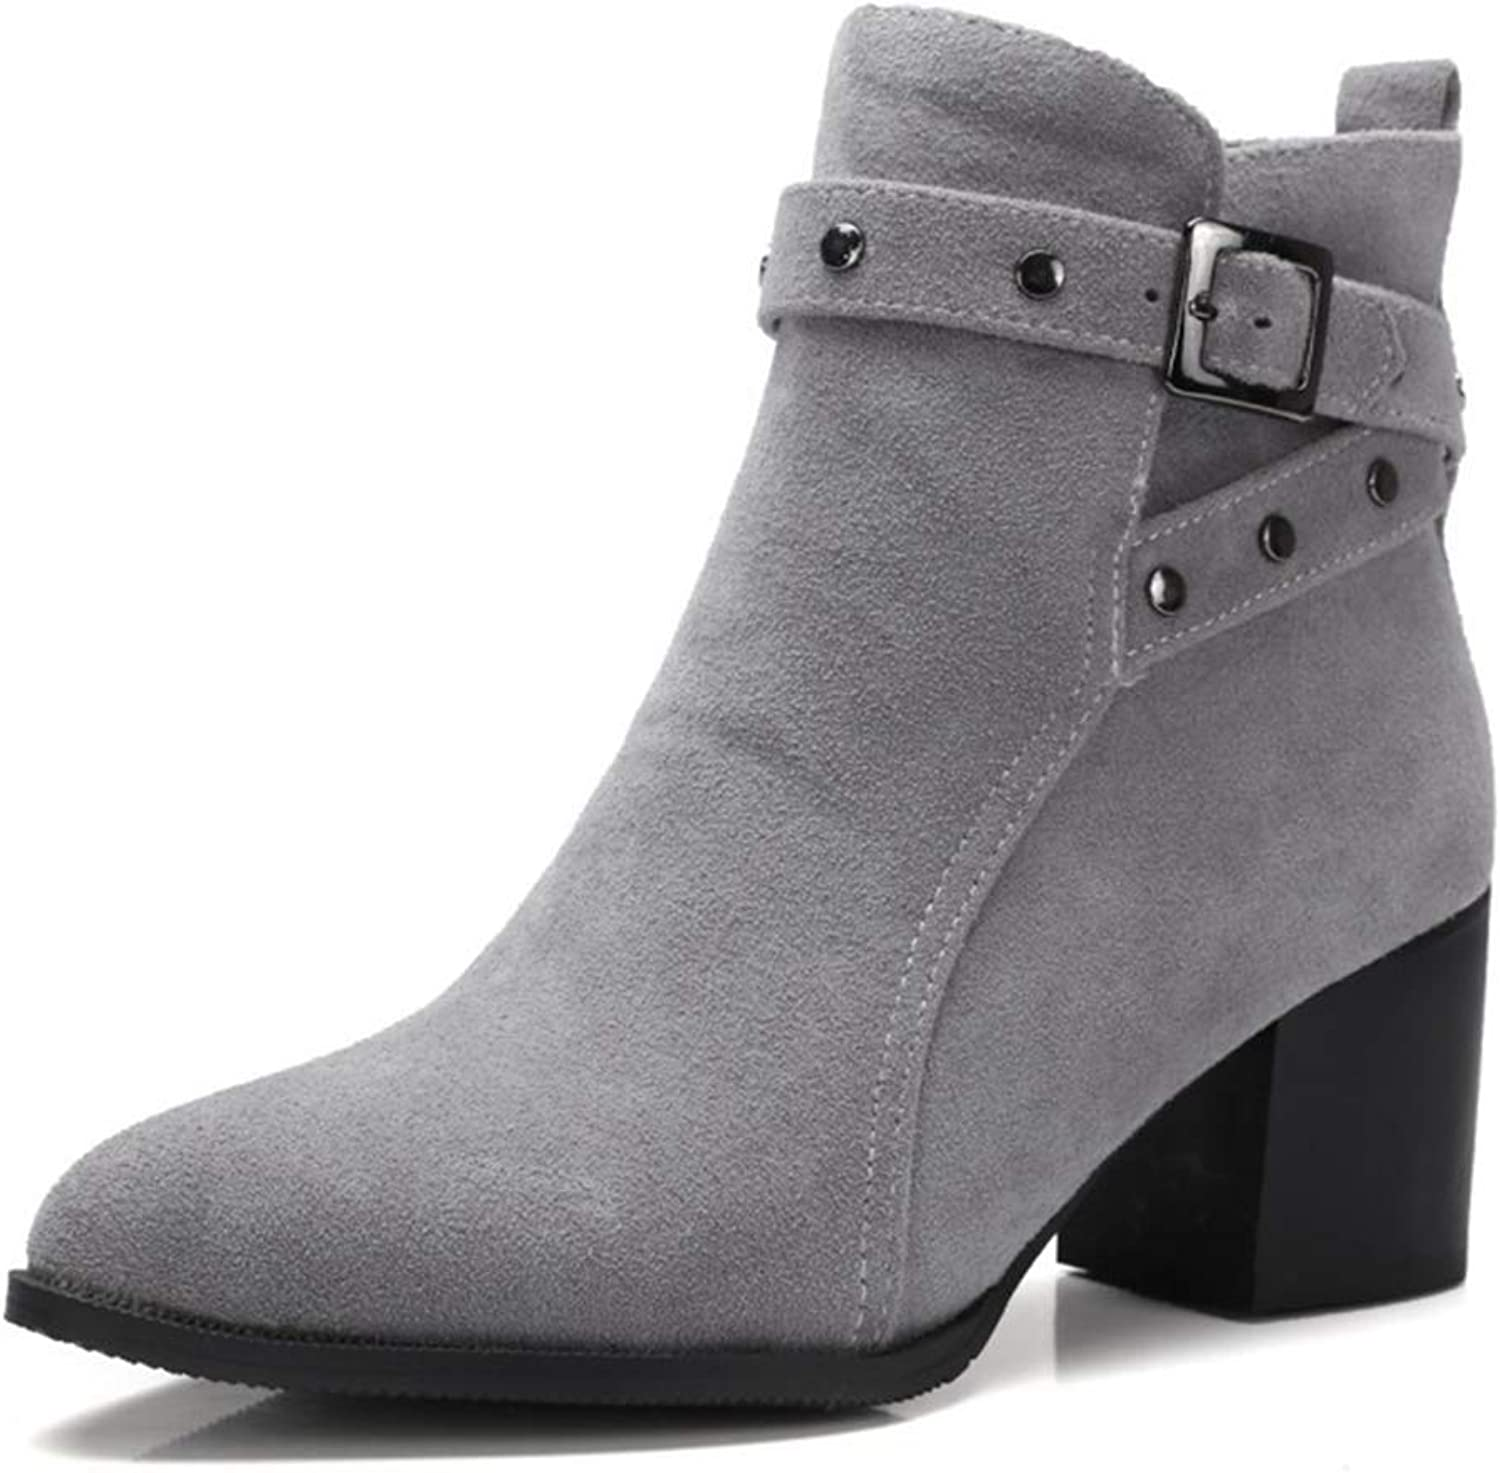 Women's Pull On Ankle Boots Round Toe Low Heels Winter Chunky Heel Riding Bootie Slip On shoes